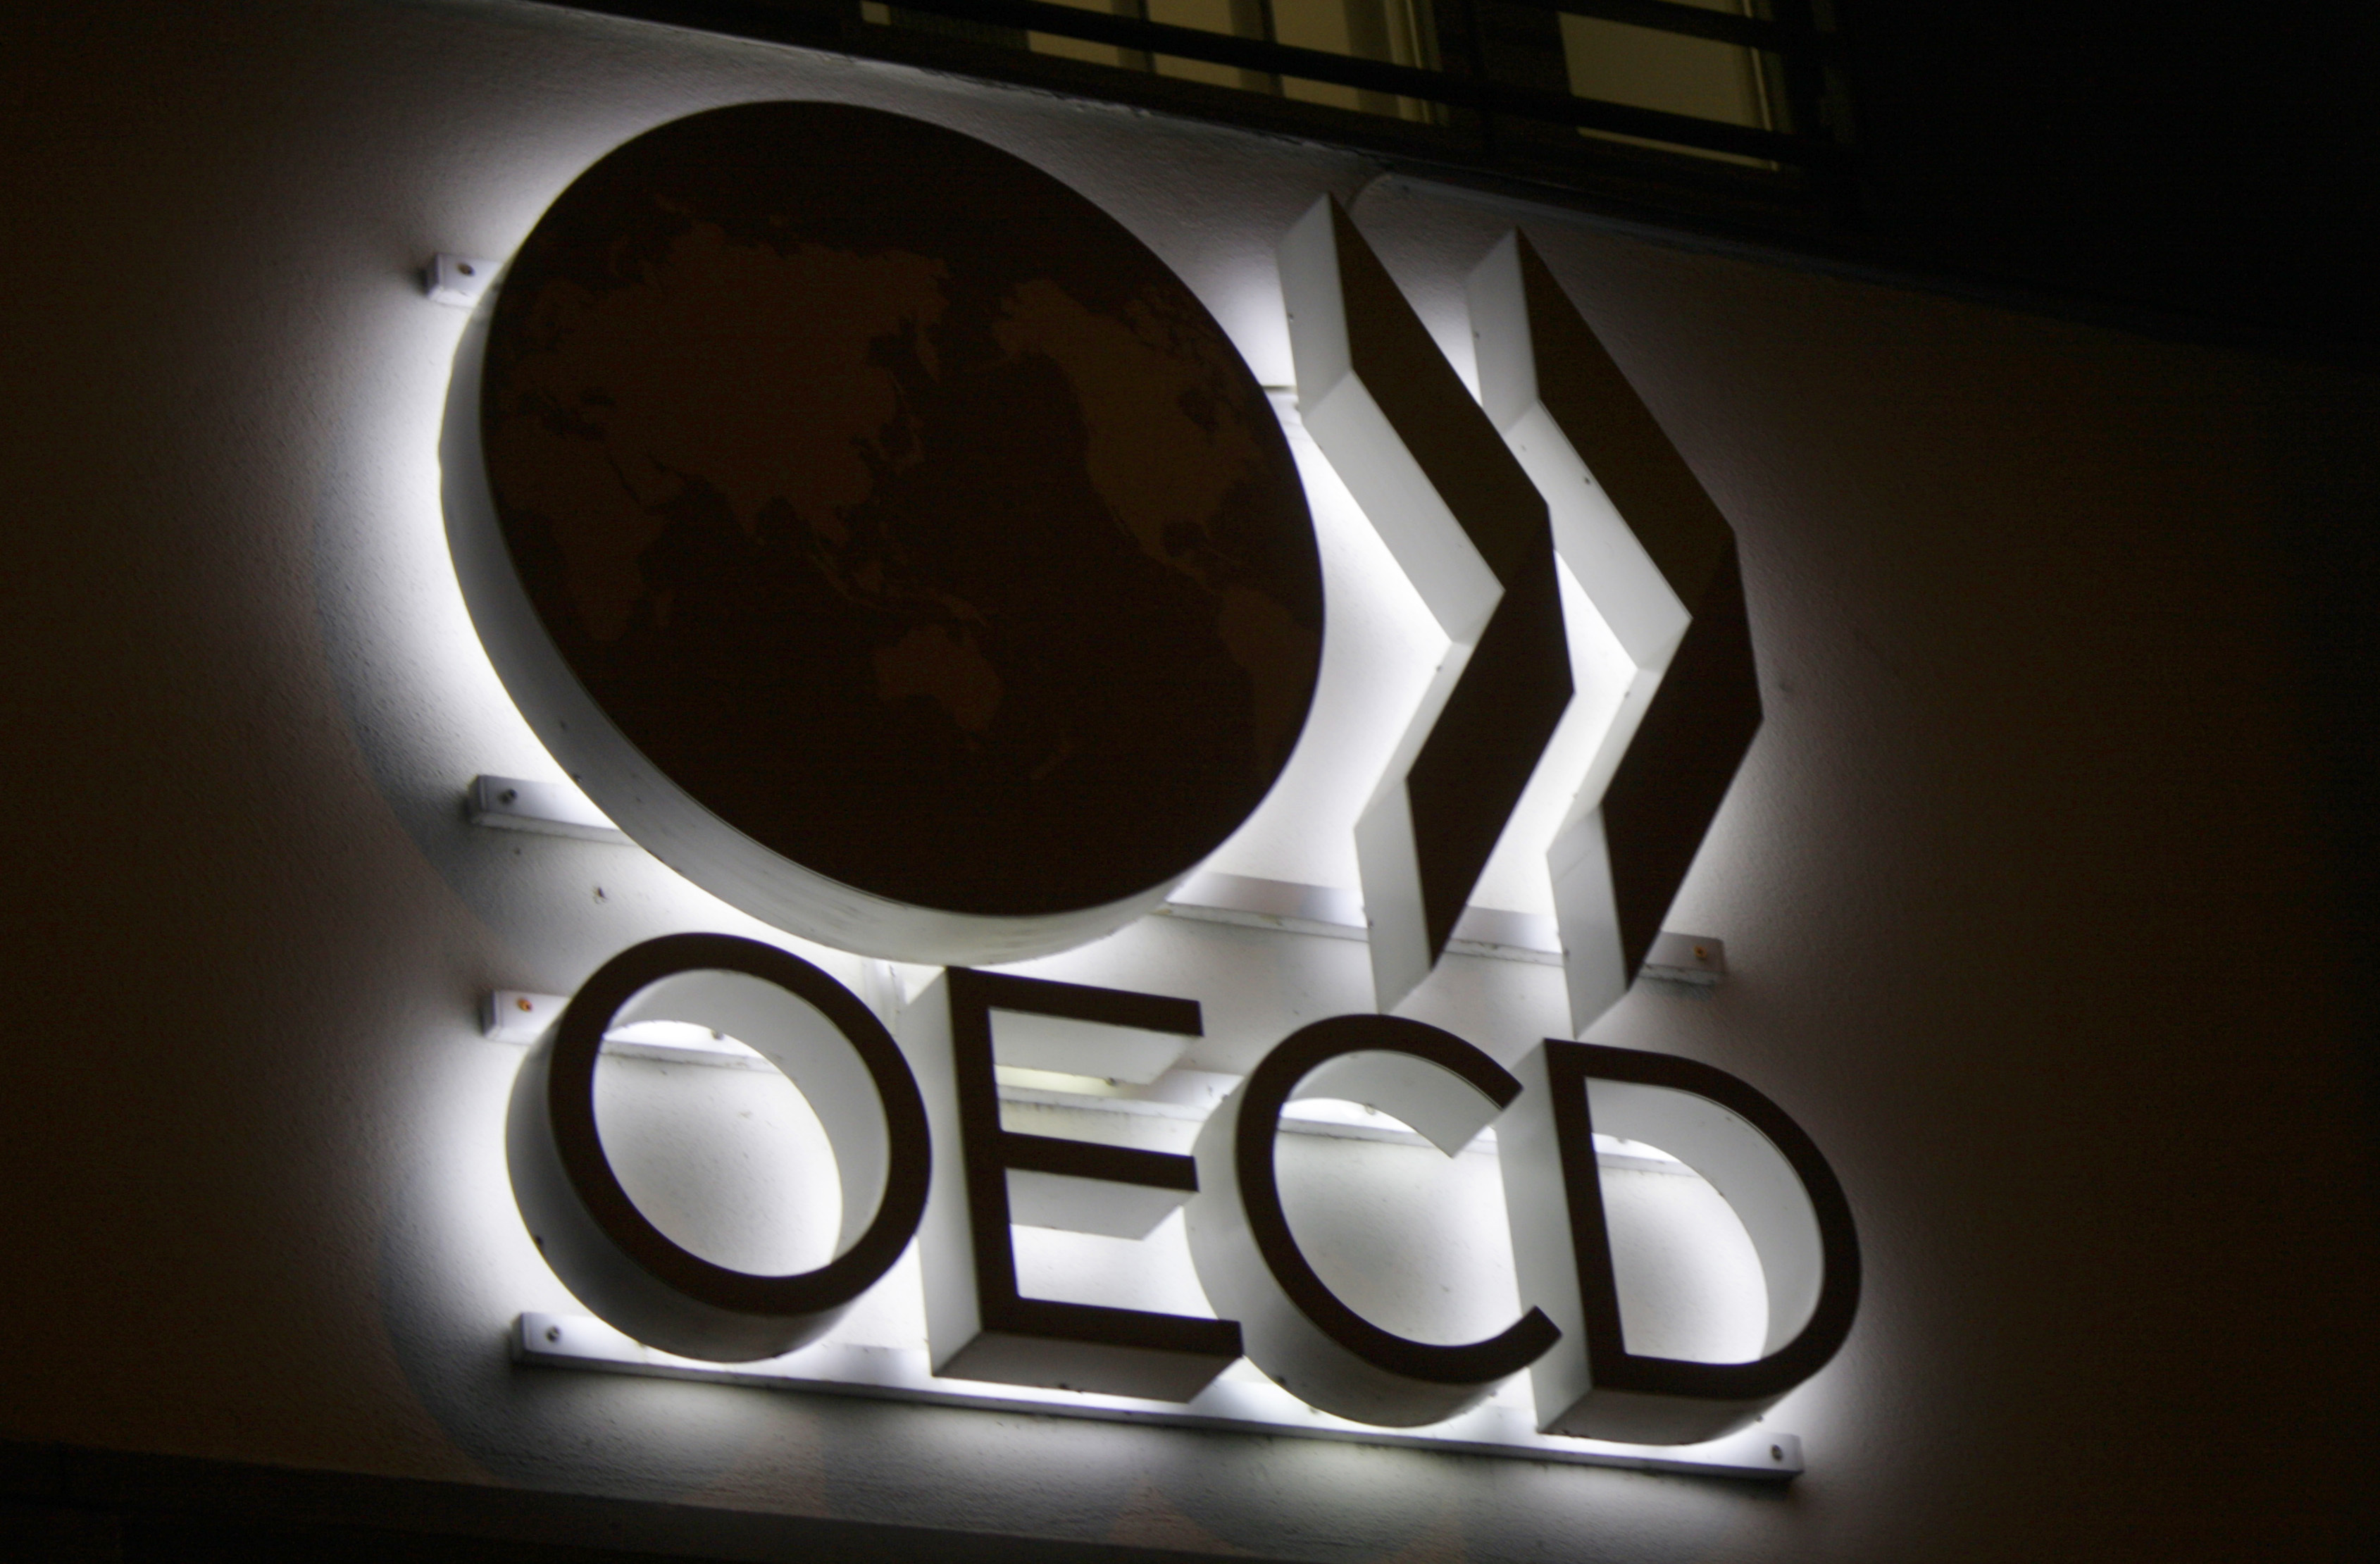 OECD tax exchange